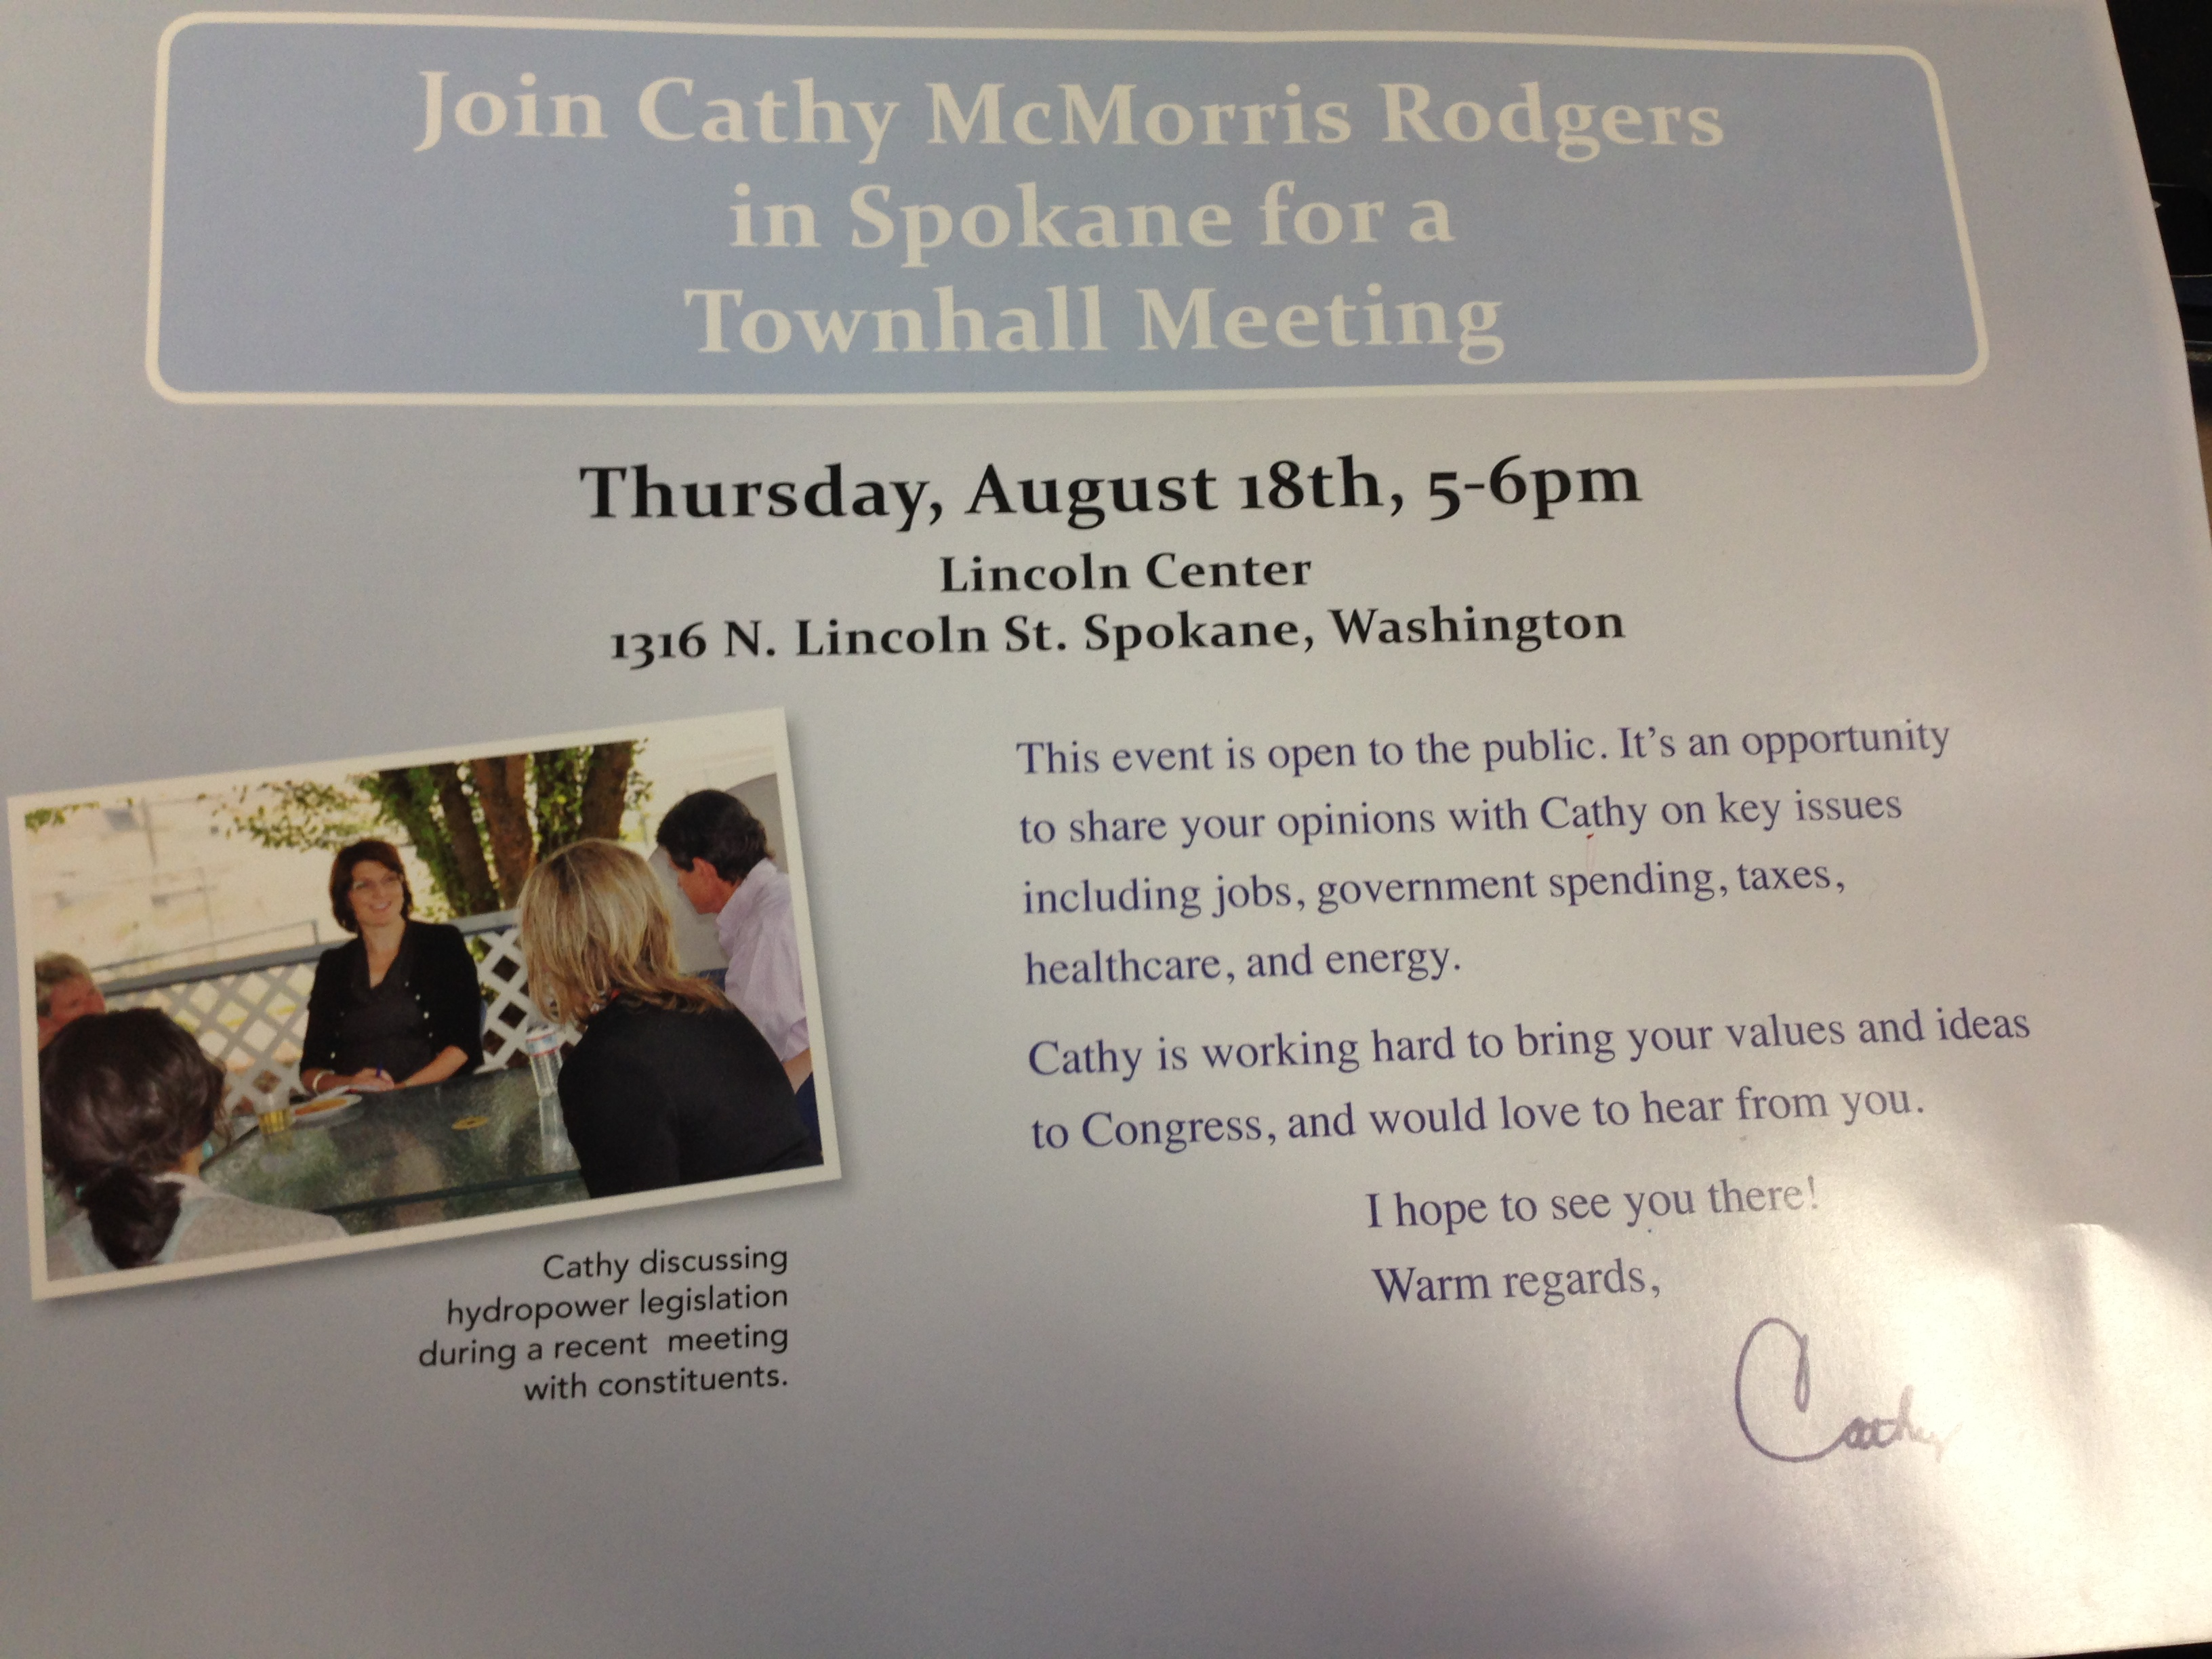 A Cathy McMorris Rodgers mailer lists the wrong date for a town hall meeting